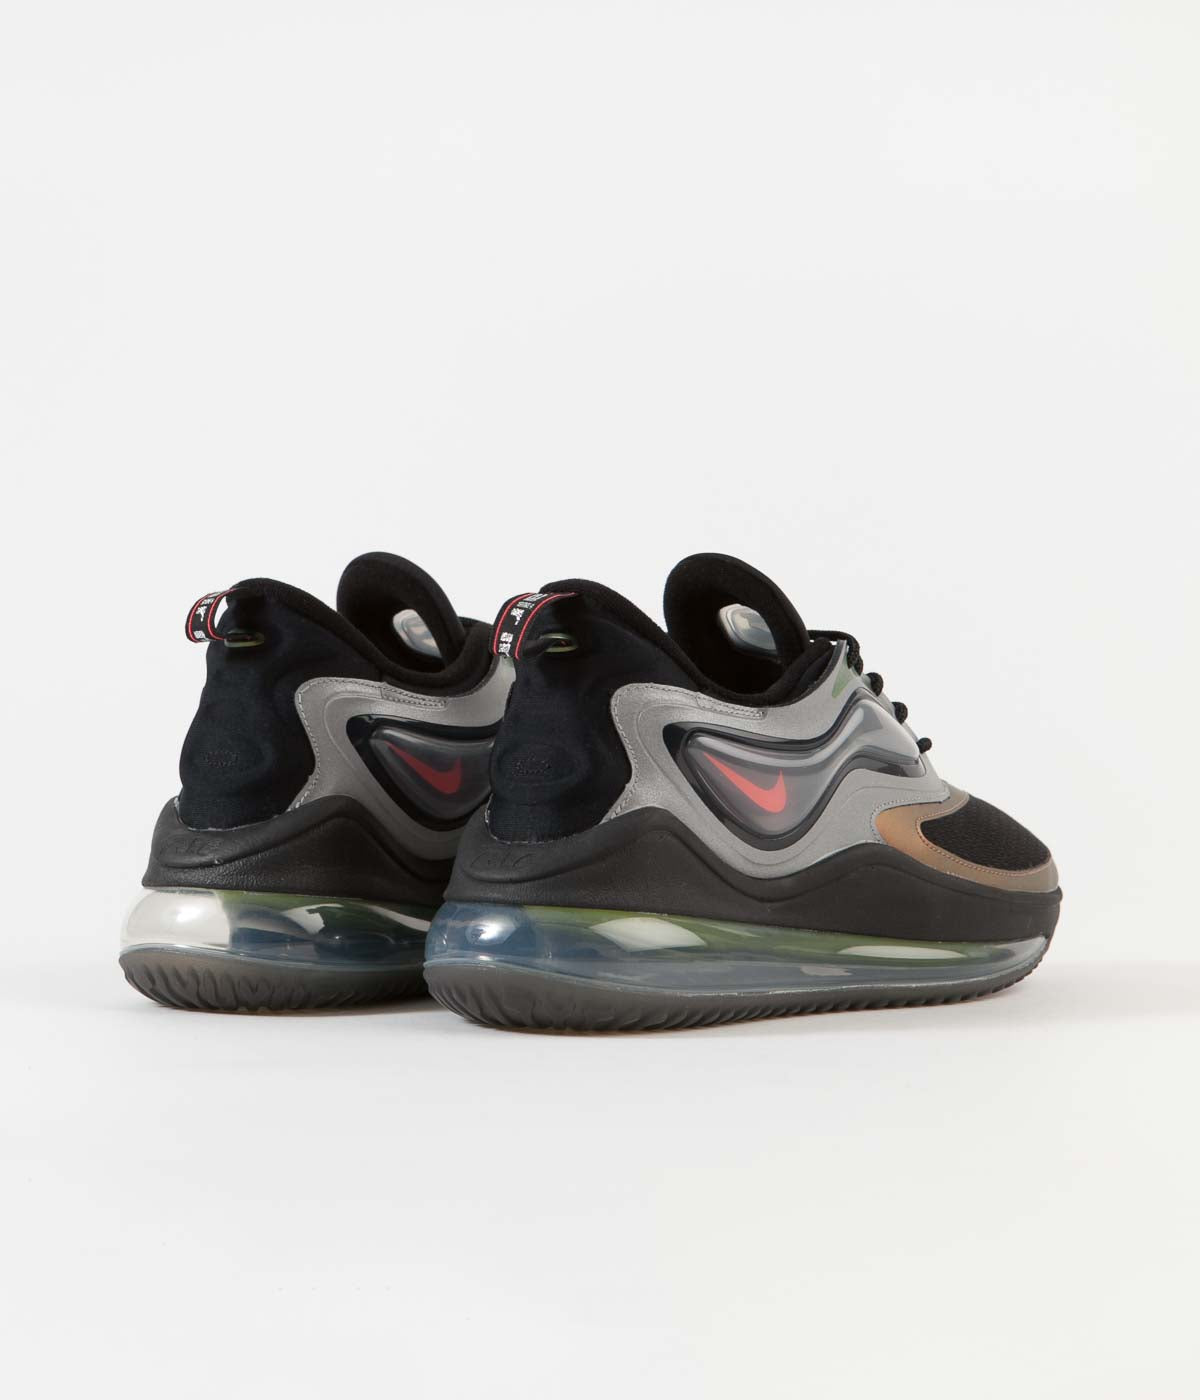 nike-air-max-zephyr-eoi-shoes-metallic-silver-bright-crimson-black-4_32bd876d-b7b1-4d98-ab16-ab393b361807_2048x.progressive.jpg?v=1619107434